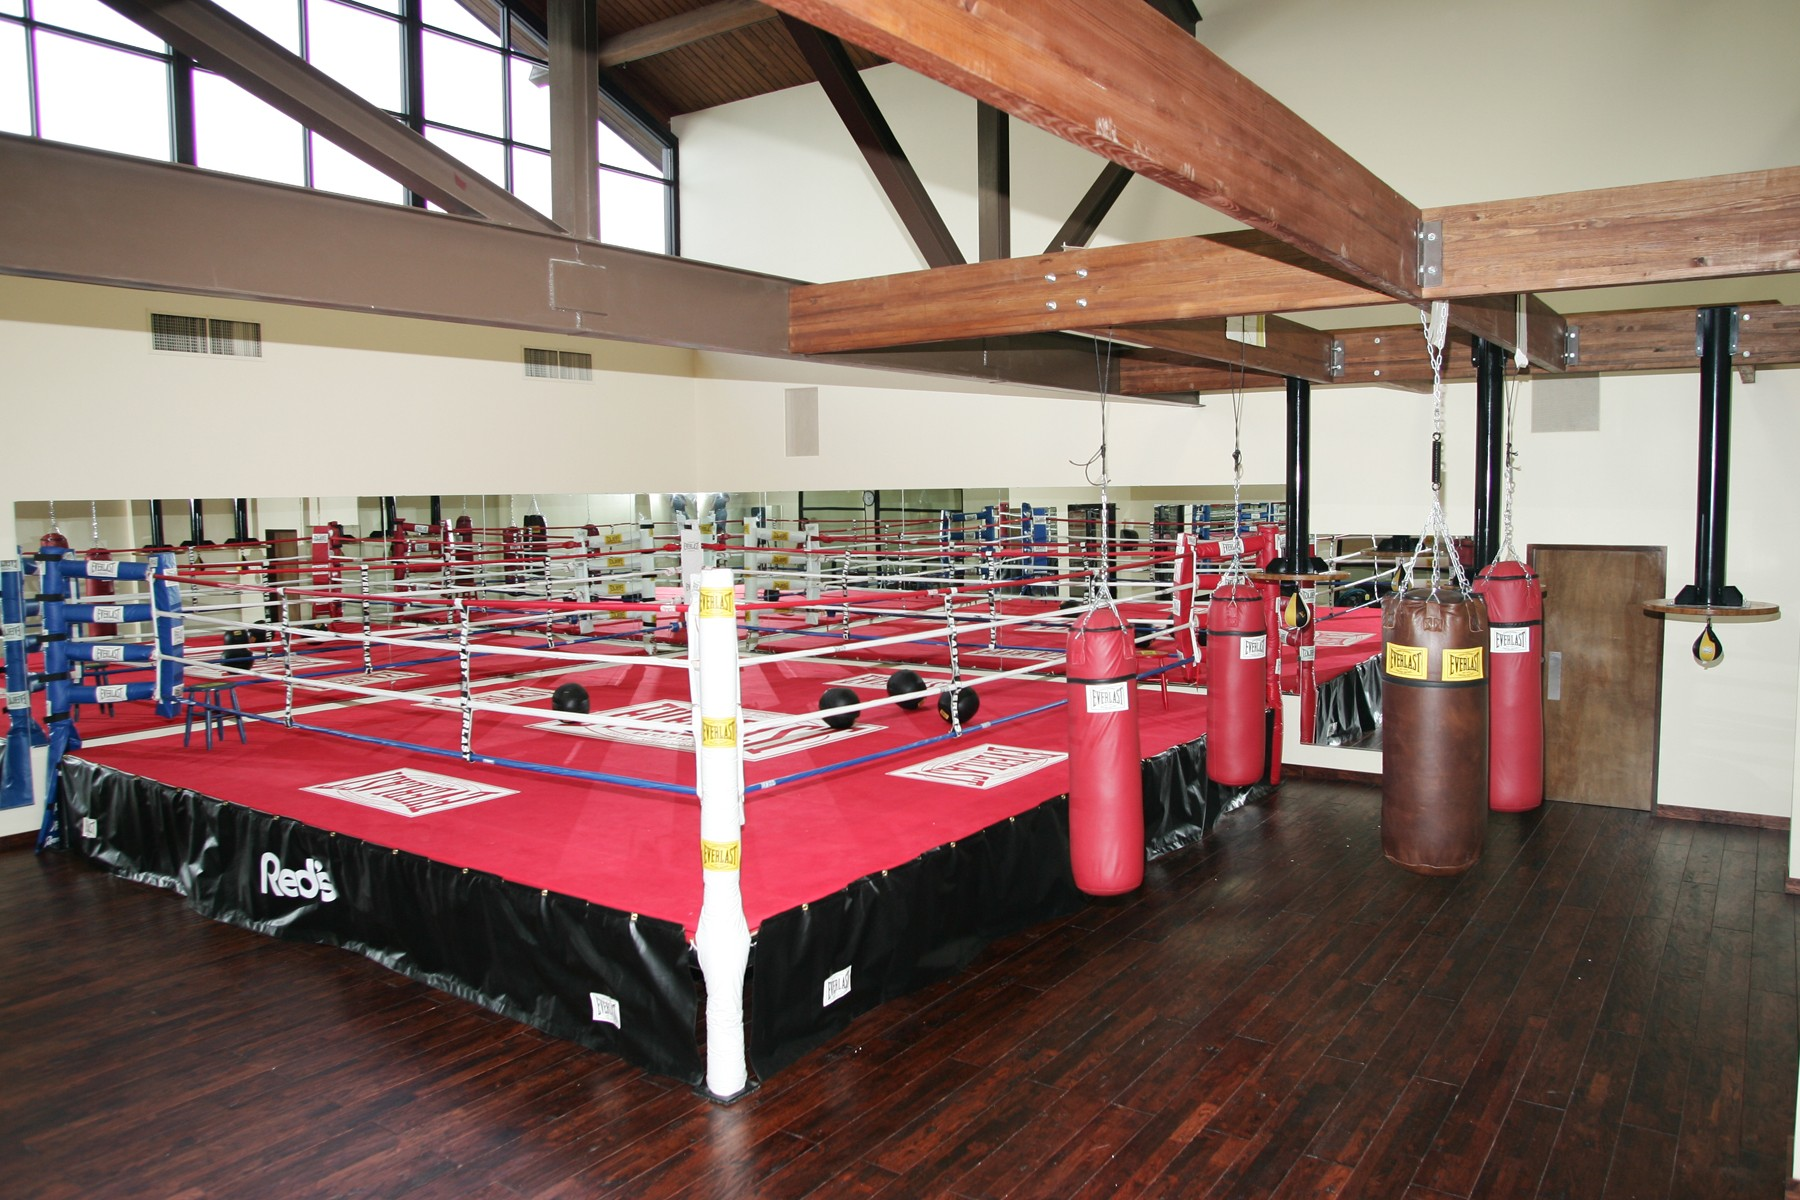 Boxing ring in gym in Red's Health Club in Lafayette, La